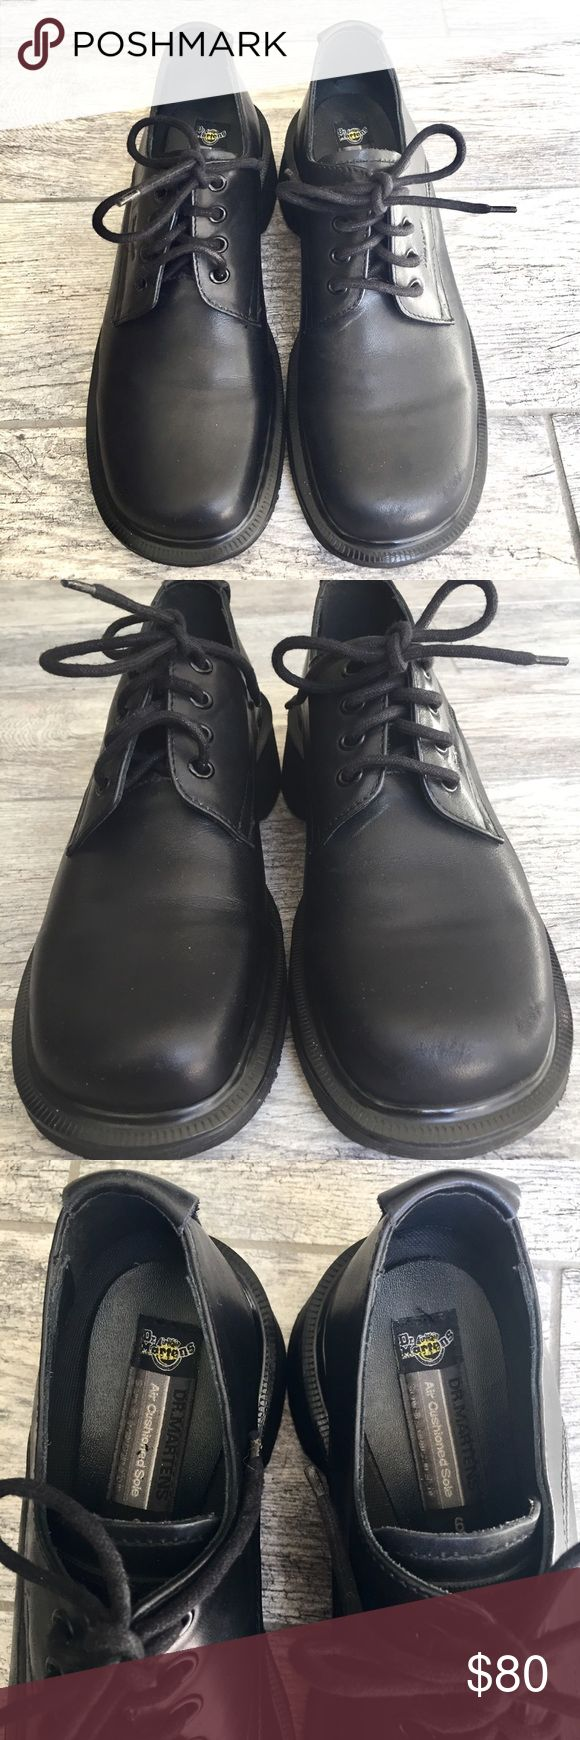 Dr. Doc Martens Men's Black Oxford Shoes Size 6 Has some scratches on the side as shown in picture. Overall, in very good used condition. Very minimal creasing. Dr. Martens Shoes Oxfords & Derbys